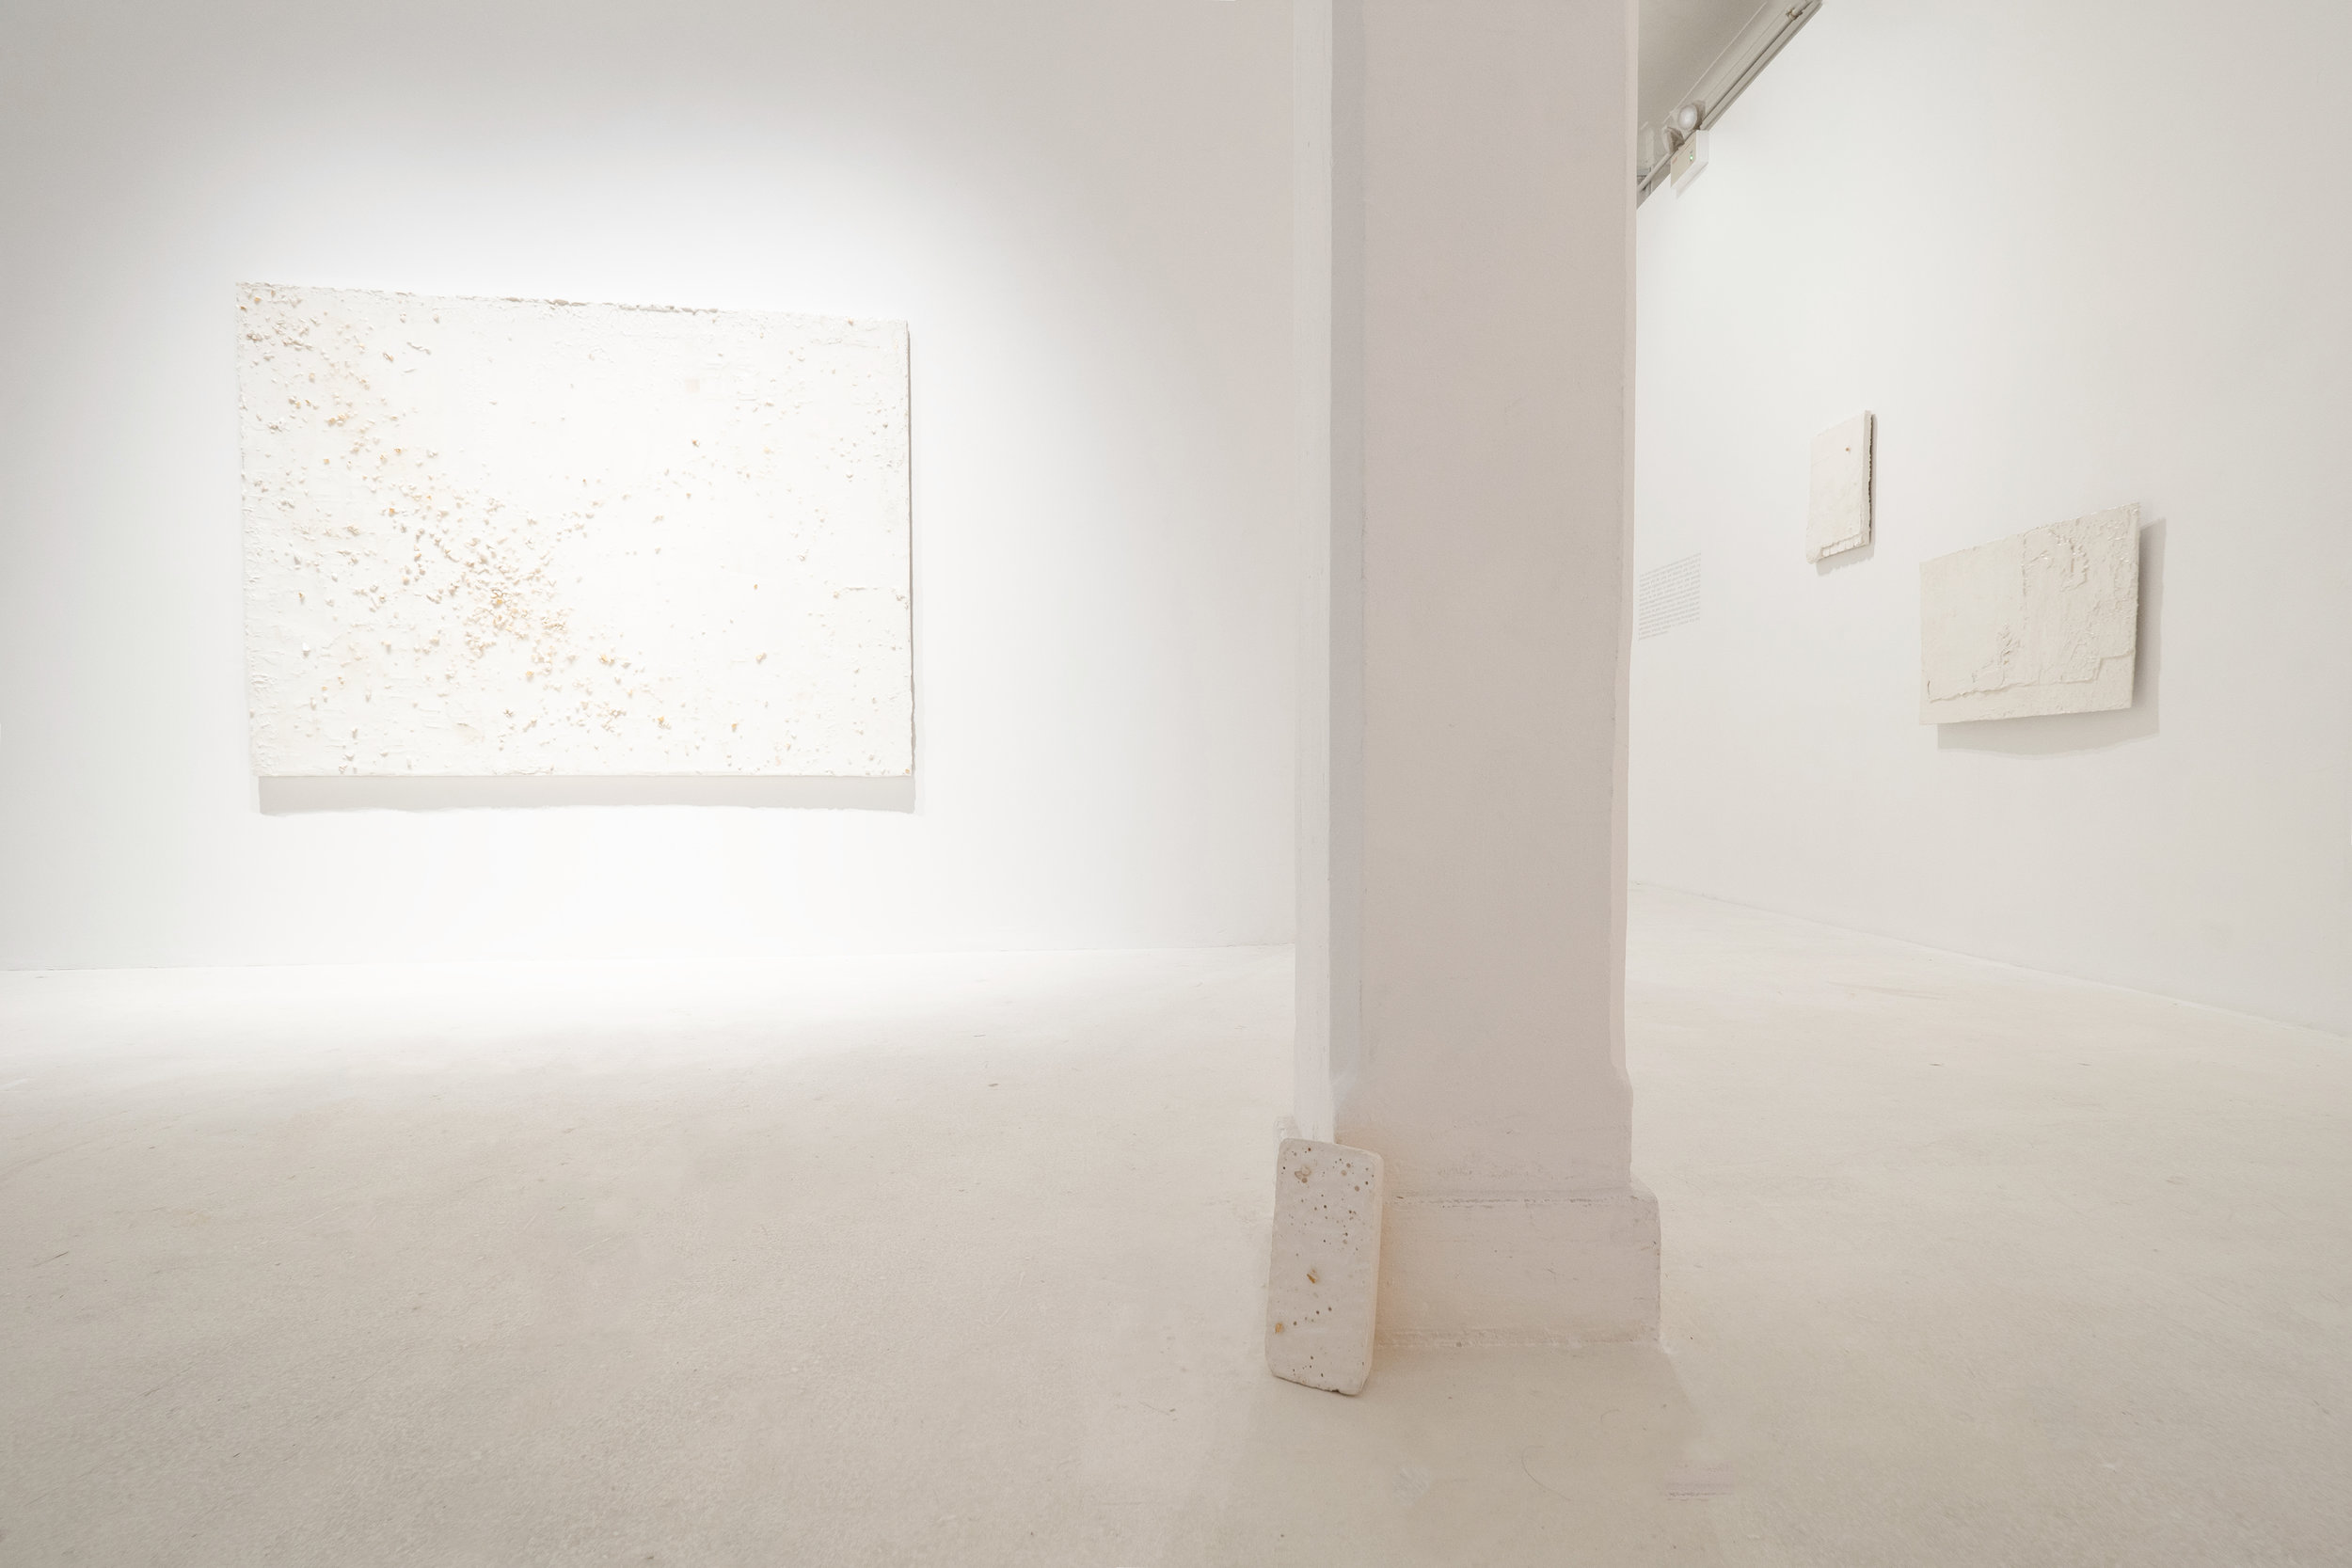 Installation View of 'Stardust' 'Sailor' 'Aspect' 'Shoot Blood' by Ben Loong.jpg